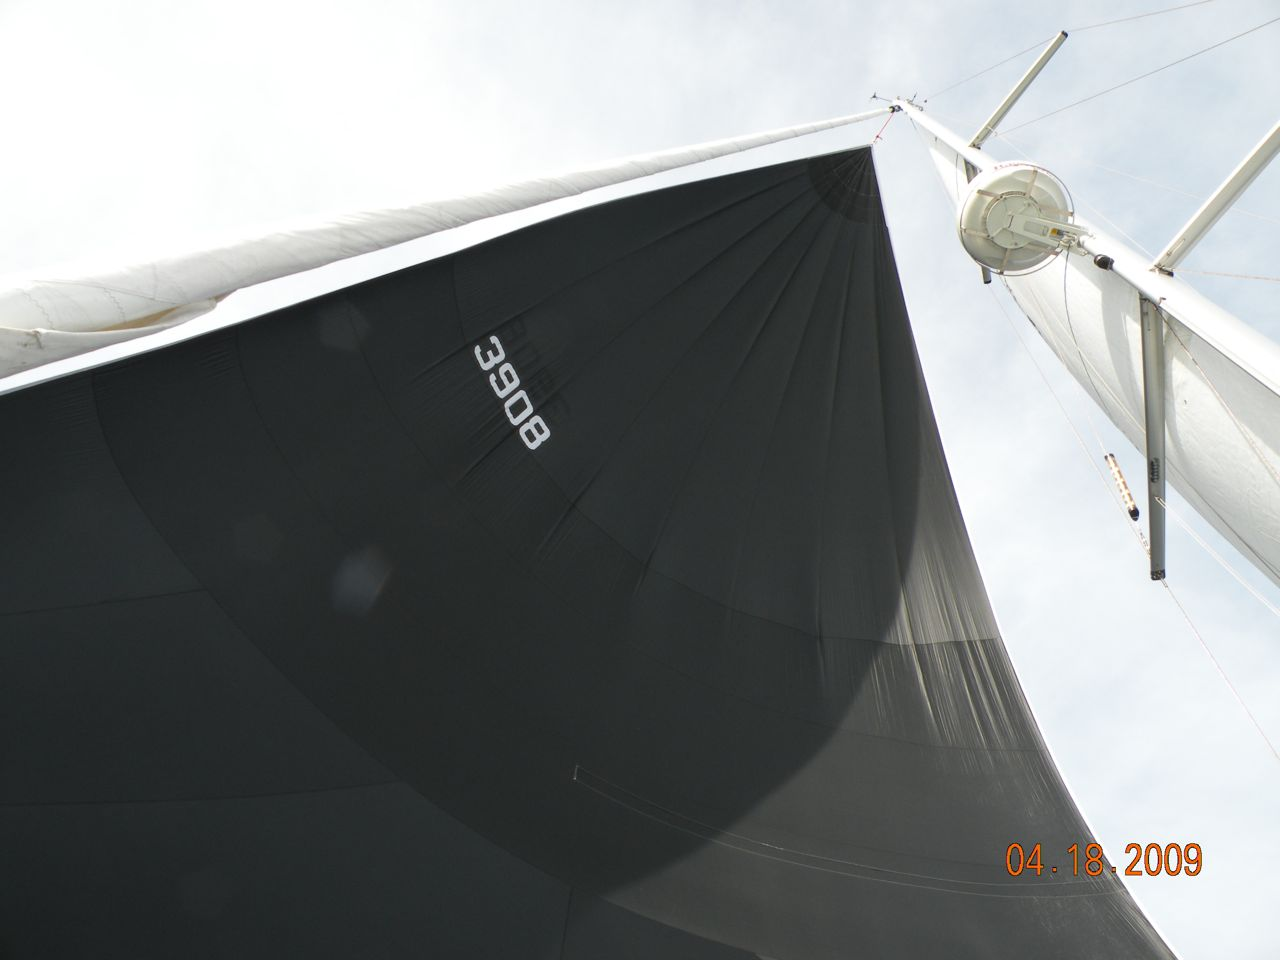 Flying the Solid Black Spinnaker. - (c) Copyright 2009